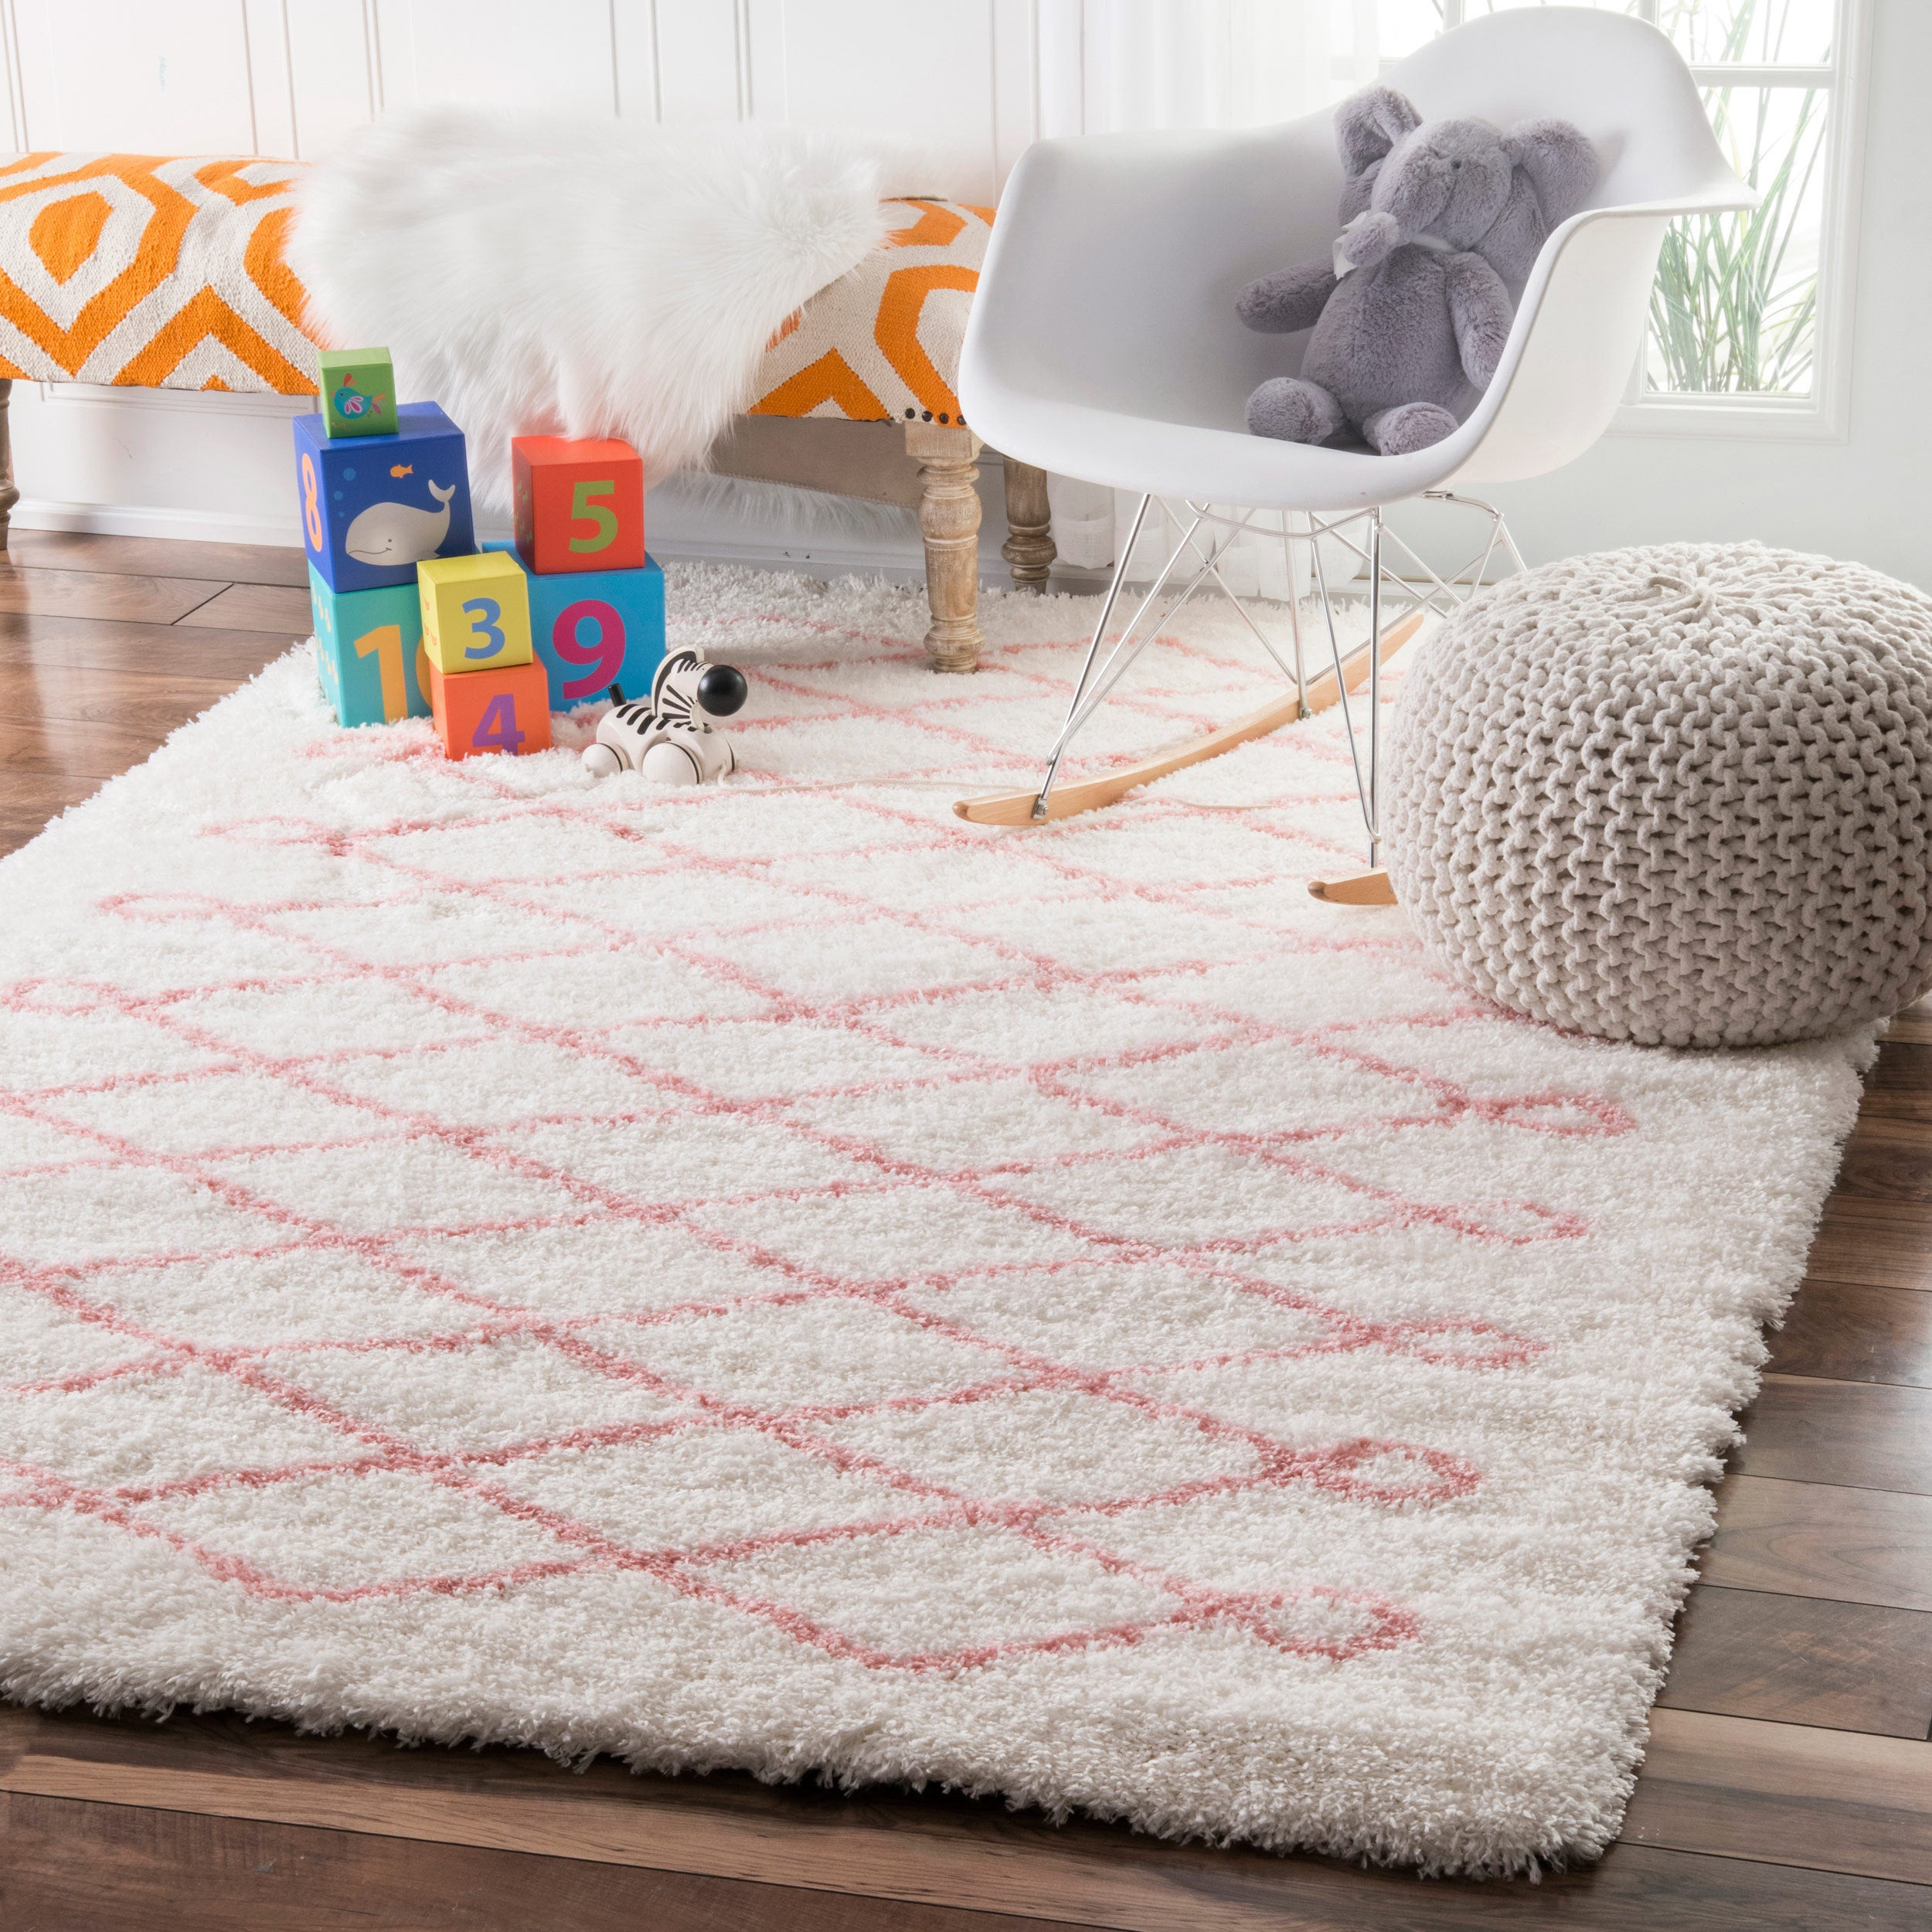 Area Rug 8 X 10 Gray And White Striped 8x10 Designs